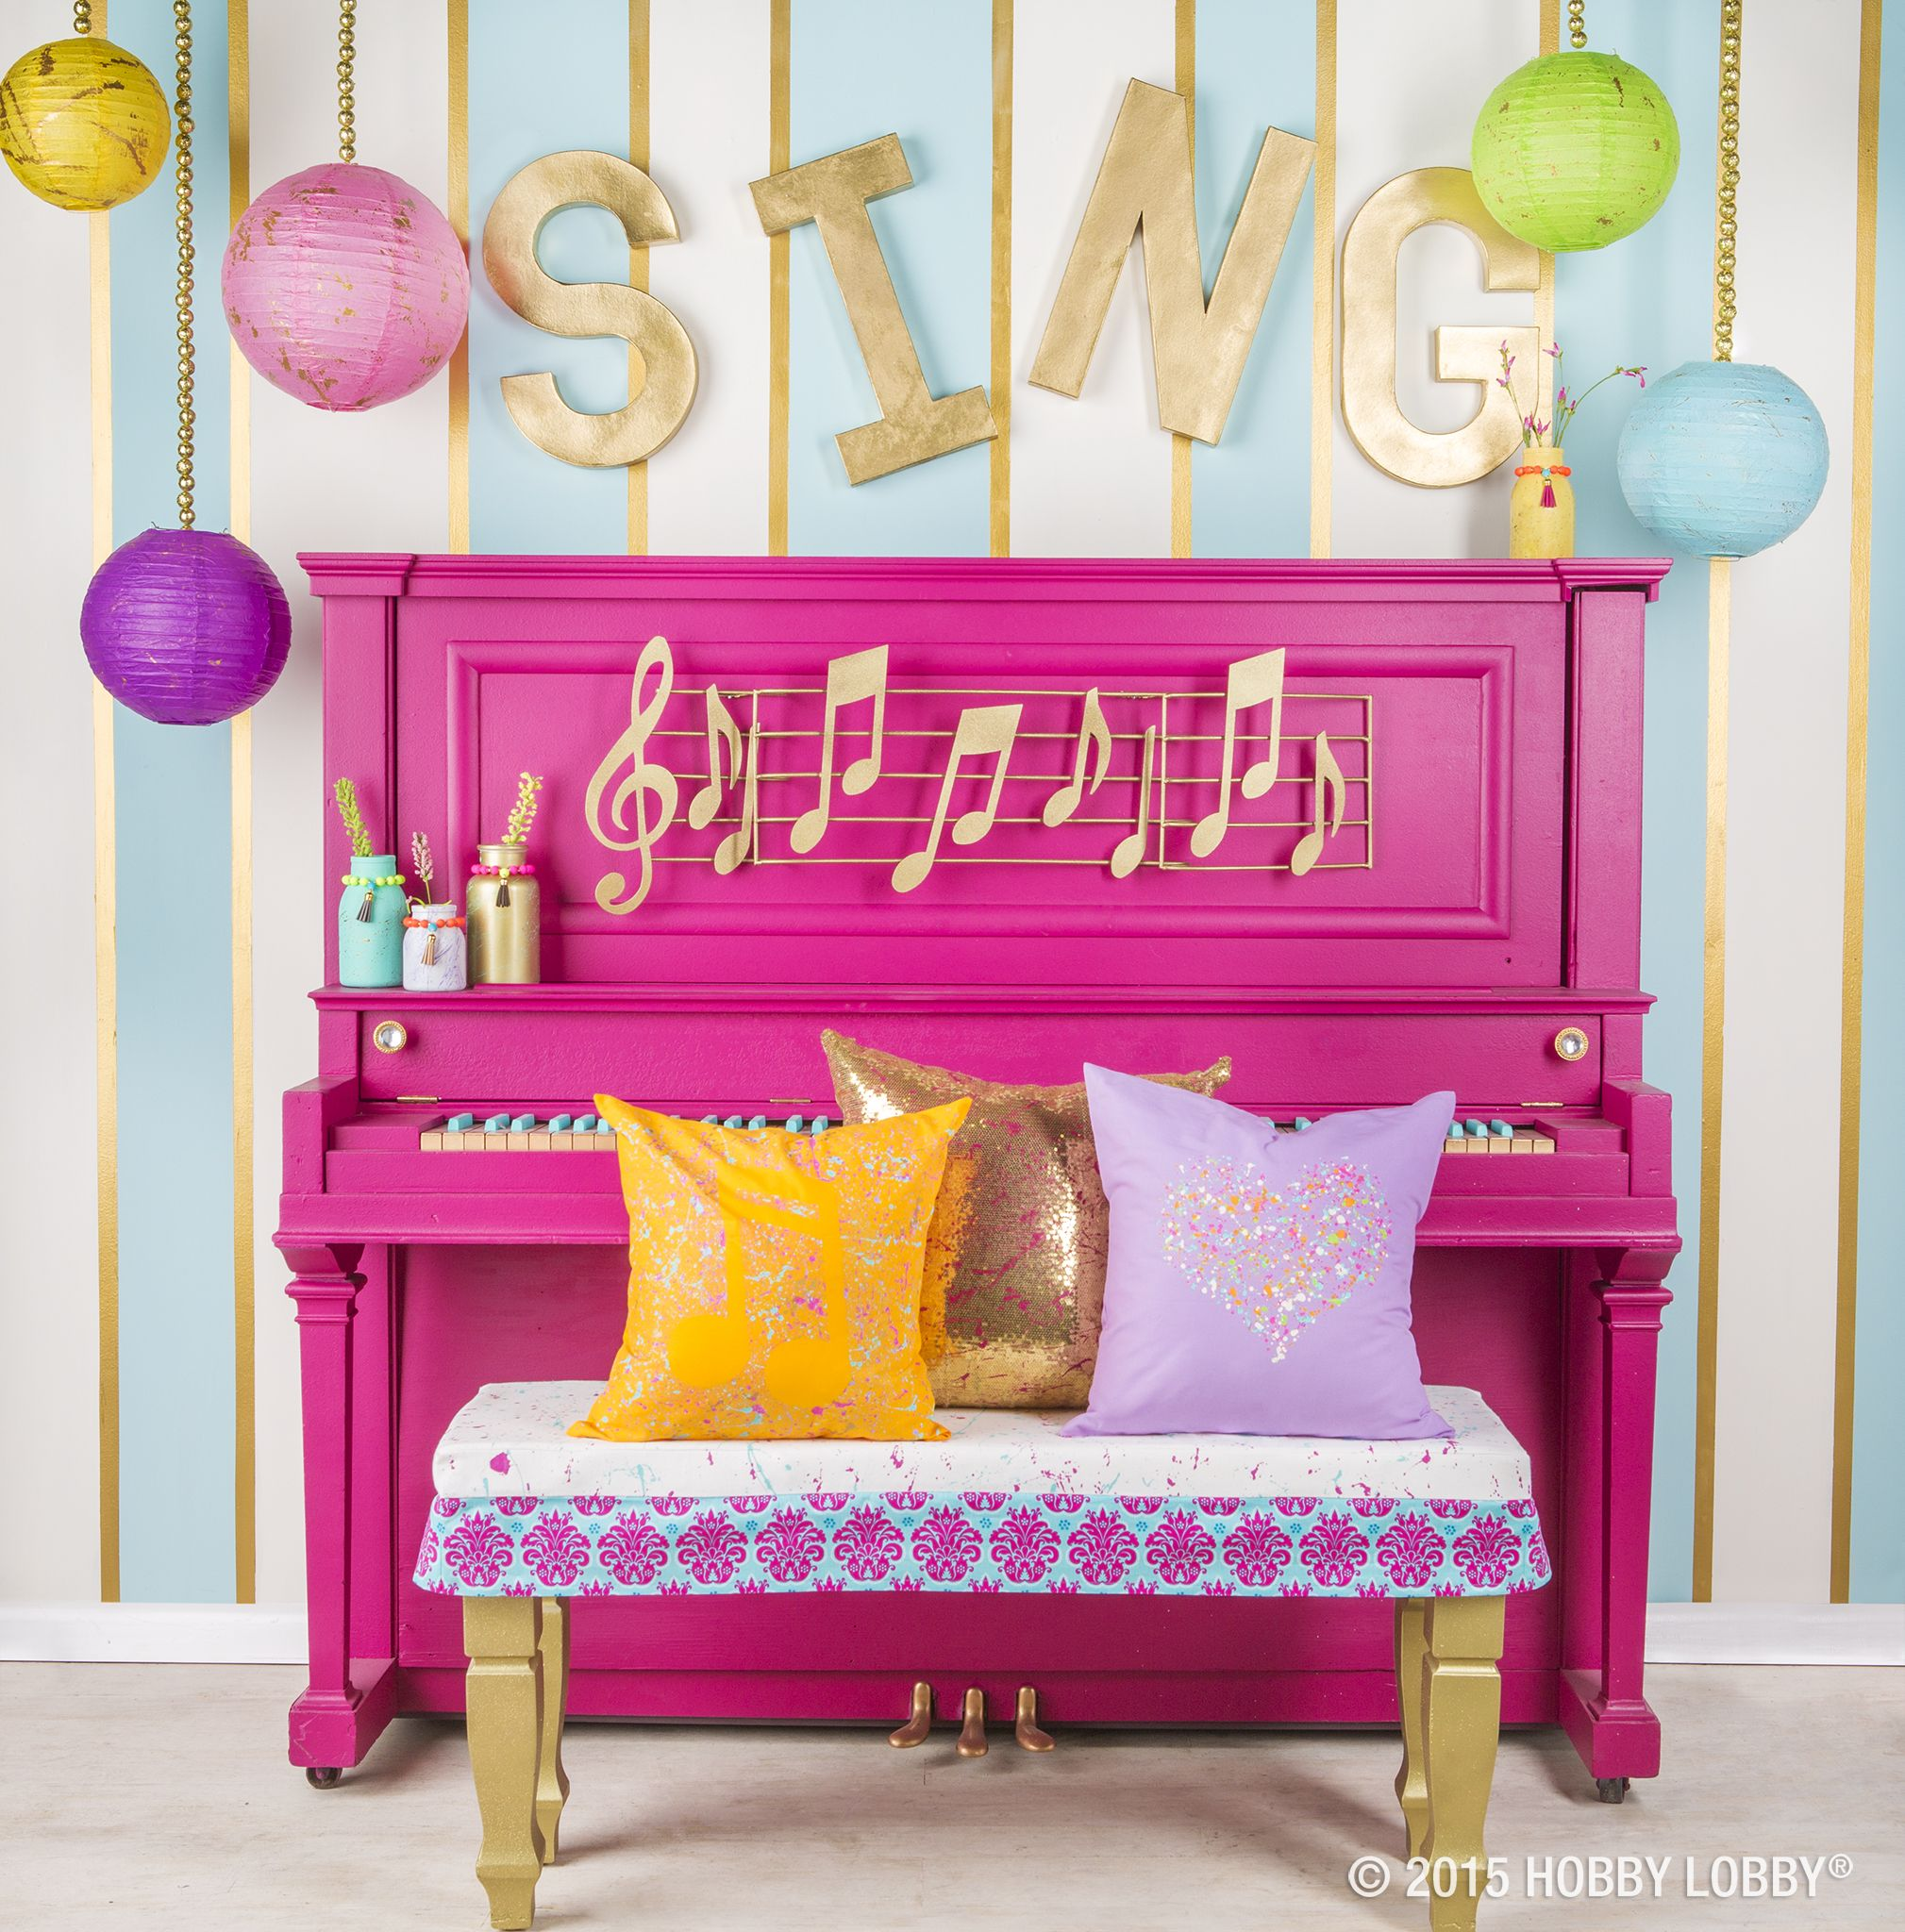 From Jars To Pillows, And Seat Covers To Pianos